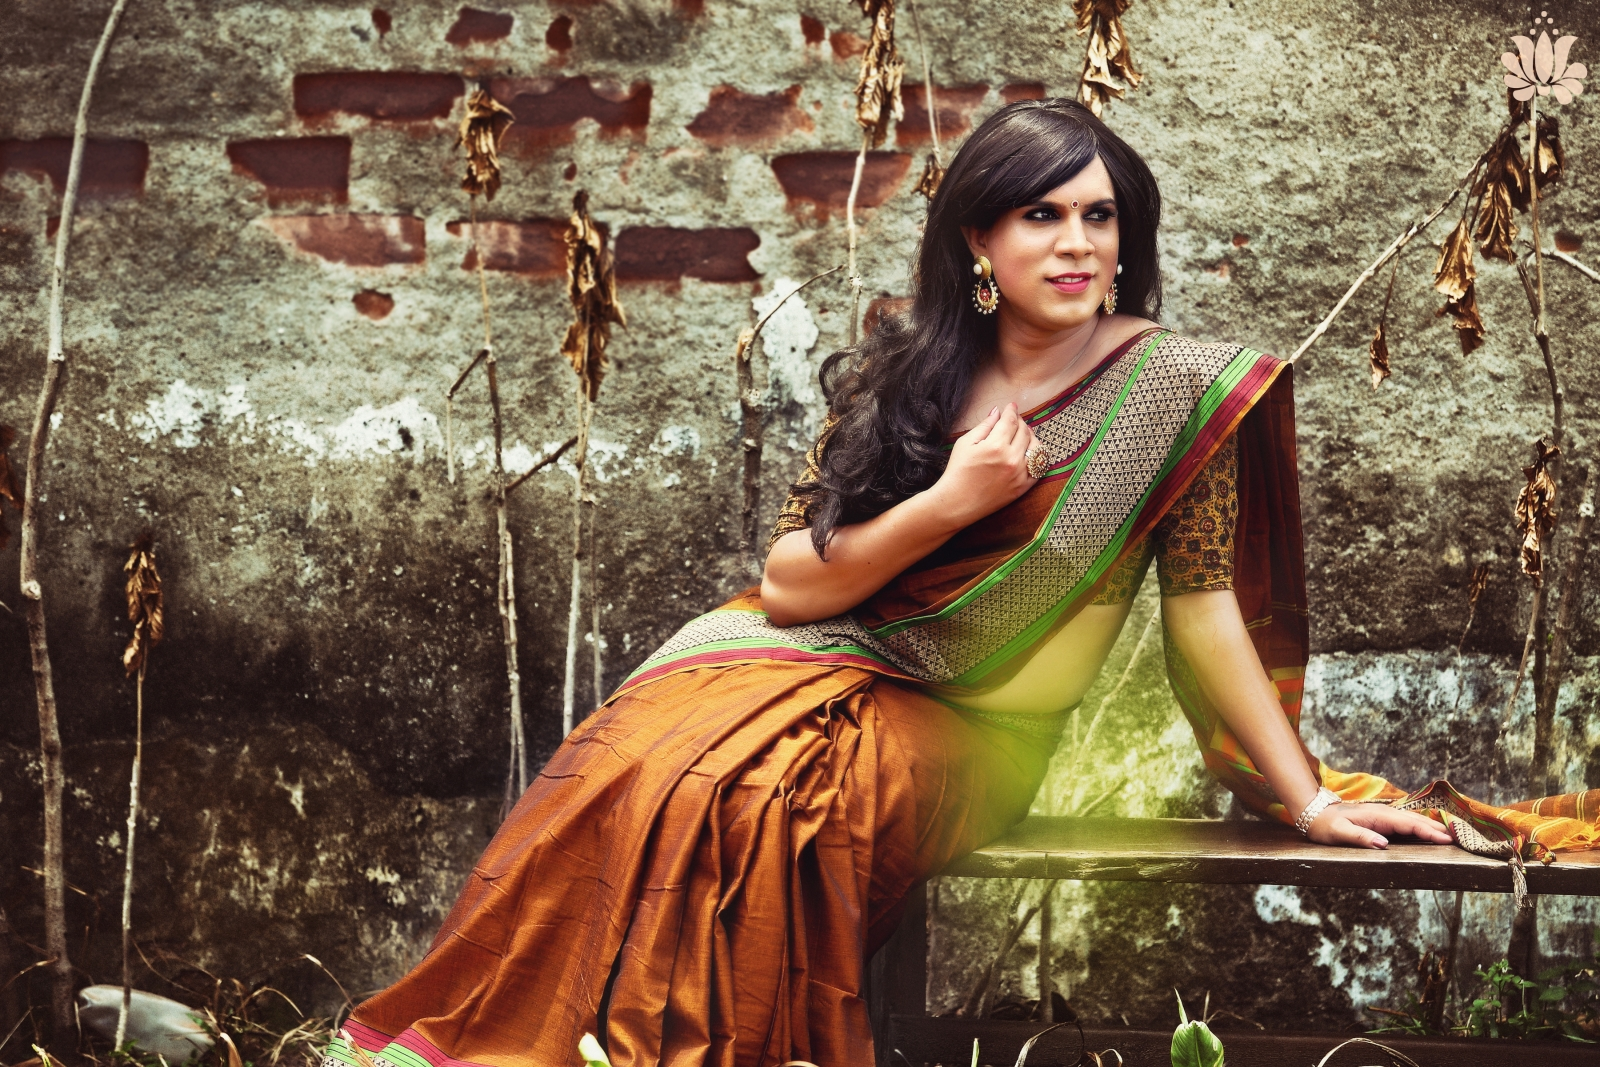 Indian Transgender Wallpapers